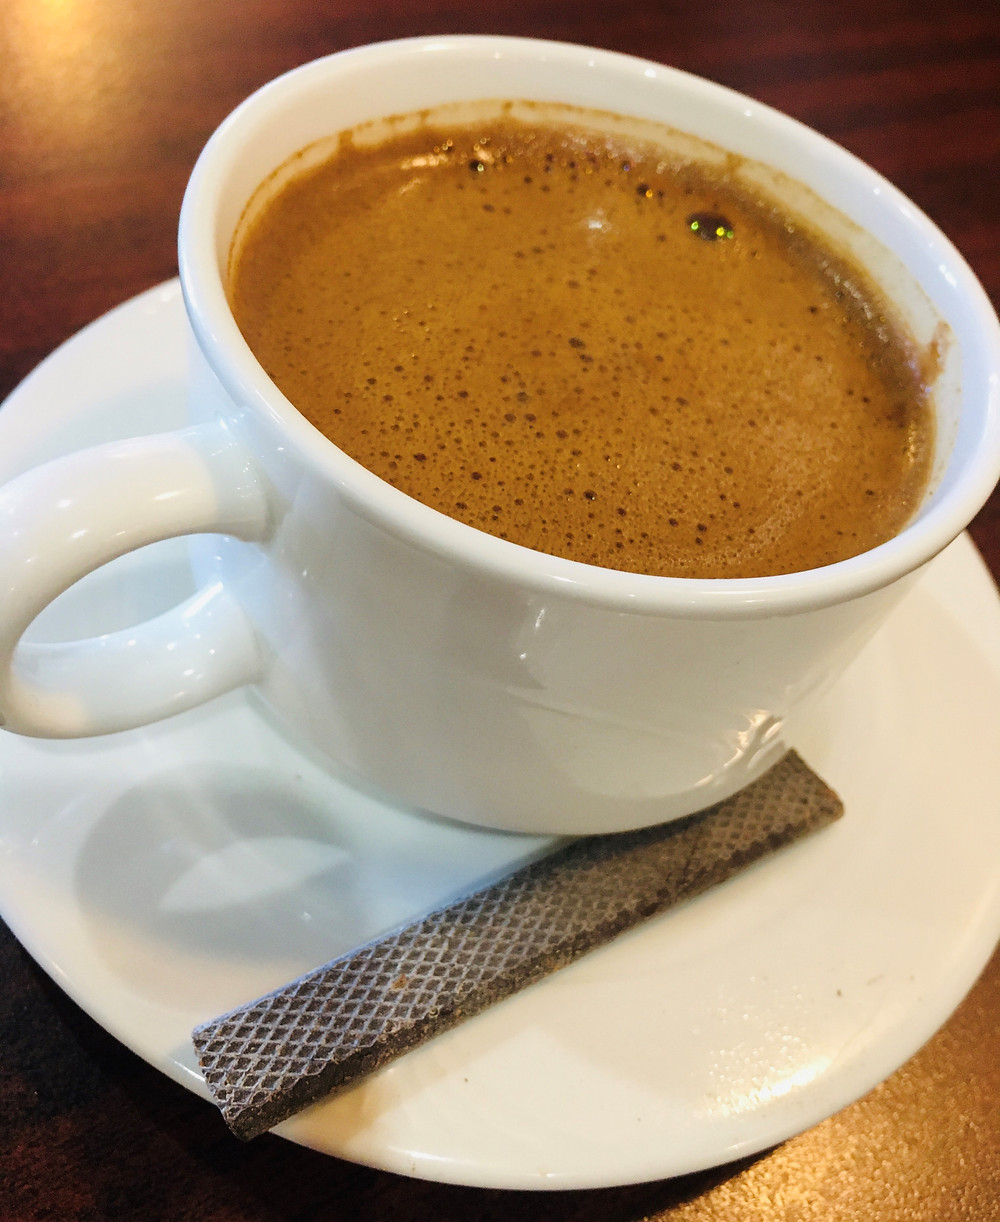 Greek Coffee from Creperi Cafe